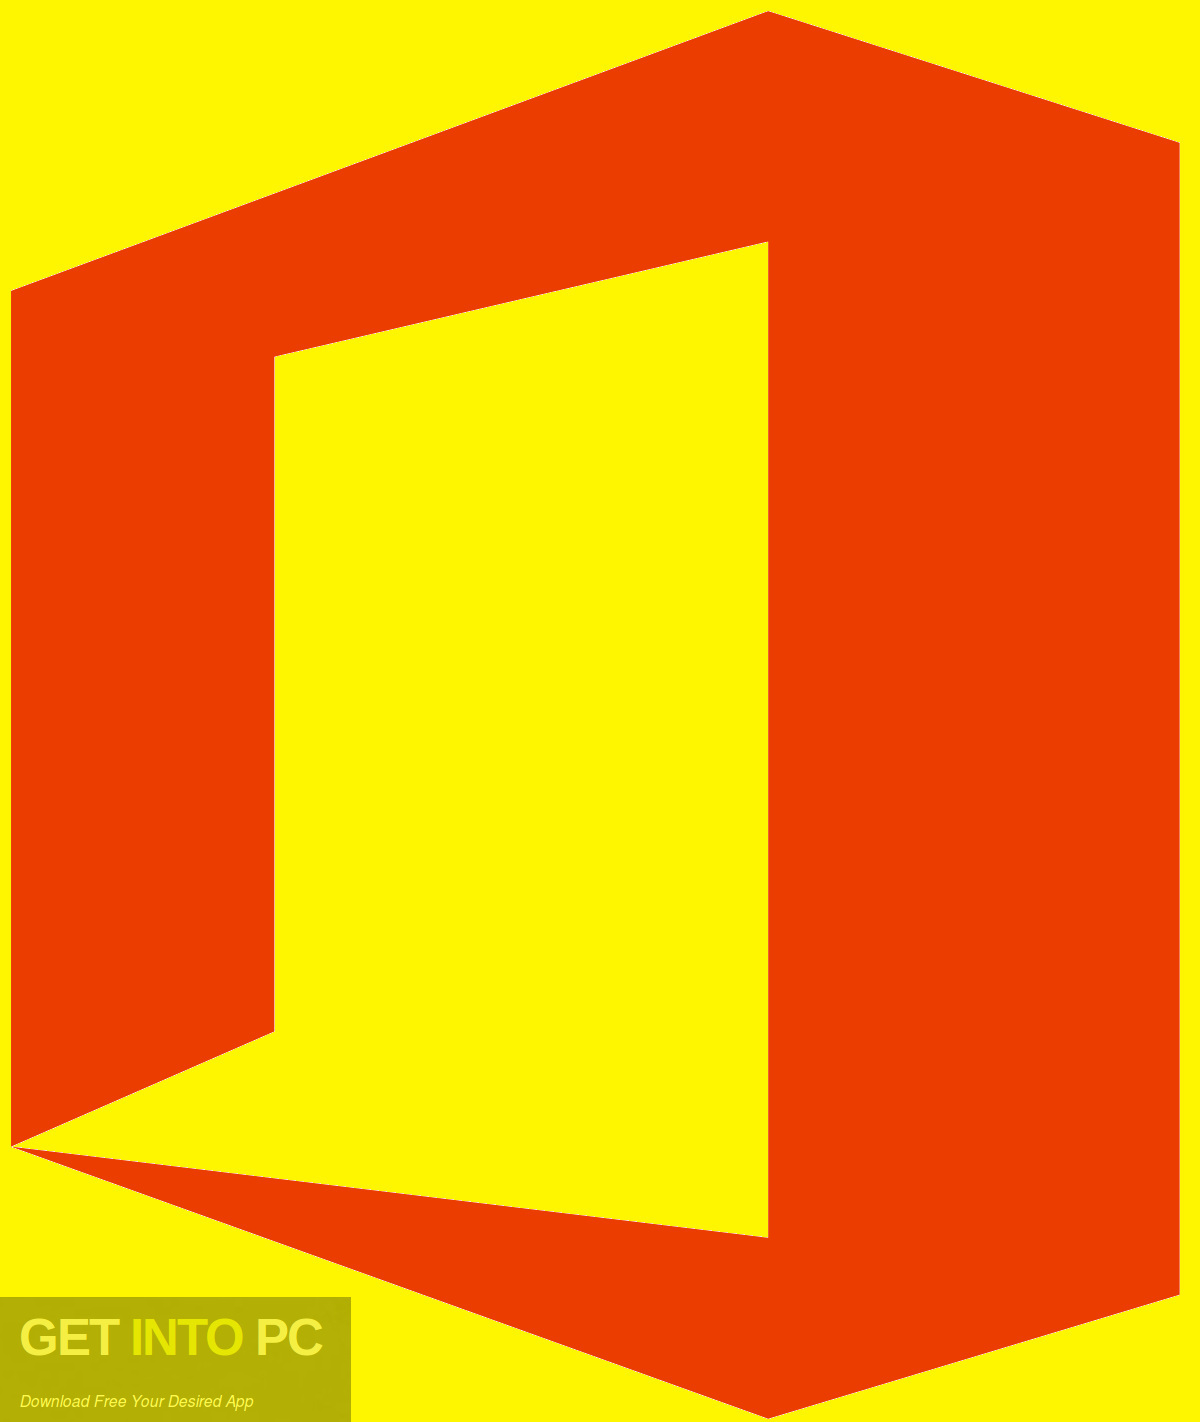 Office 2016 Professional Plus updated in August 2019 Download free-GetintoPC.com [19659006] Office 2016 Professional In addition, updated in August 2019 includes the application such as MS Word, Excel, PowerPoint, as well as Outlook, etc. It allows you to analyze data faster and easier, as it has new analysis capabilities. It has the One-click forecast that allows you to create forecasts in your data series with one click for future trends. It allows you to easily publish and share your Excel workbooks with Power BI users. You can also download Office 2016 Professional Plus June 2019. Office 2016 Professional Plus Updated in August 2019 includes </p></noscript><img class=